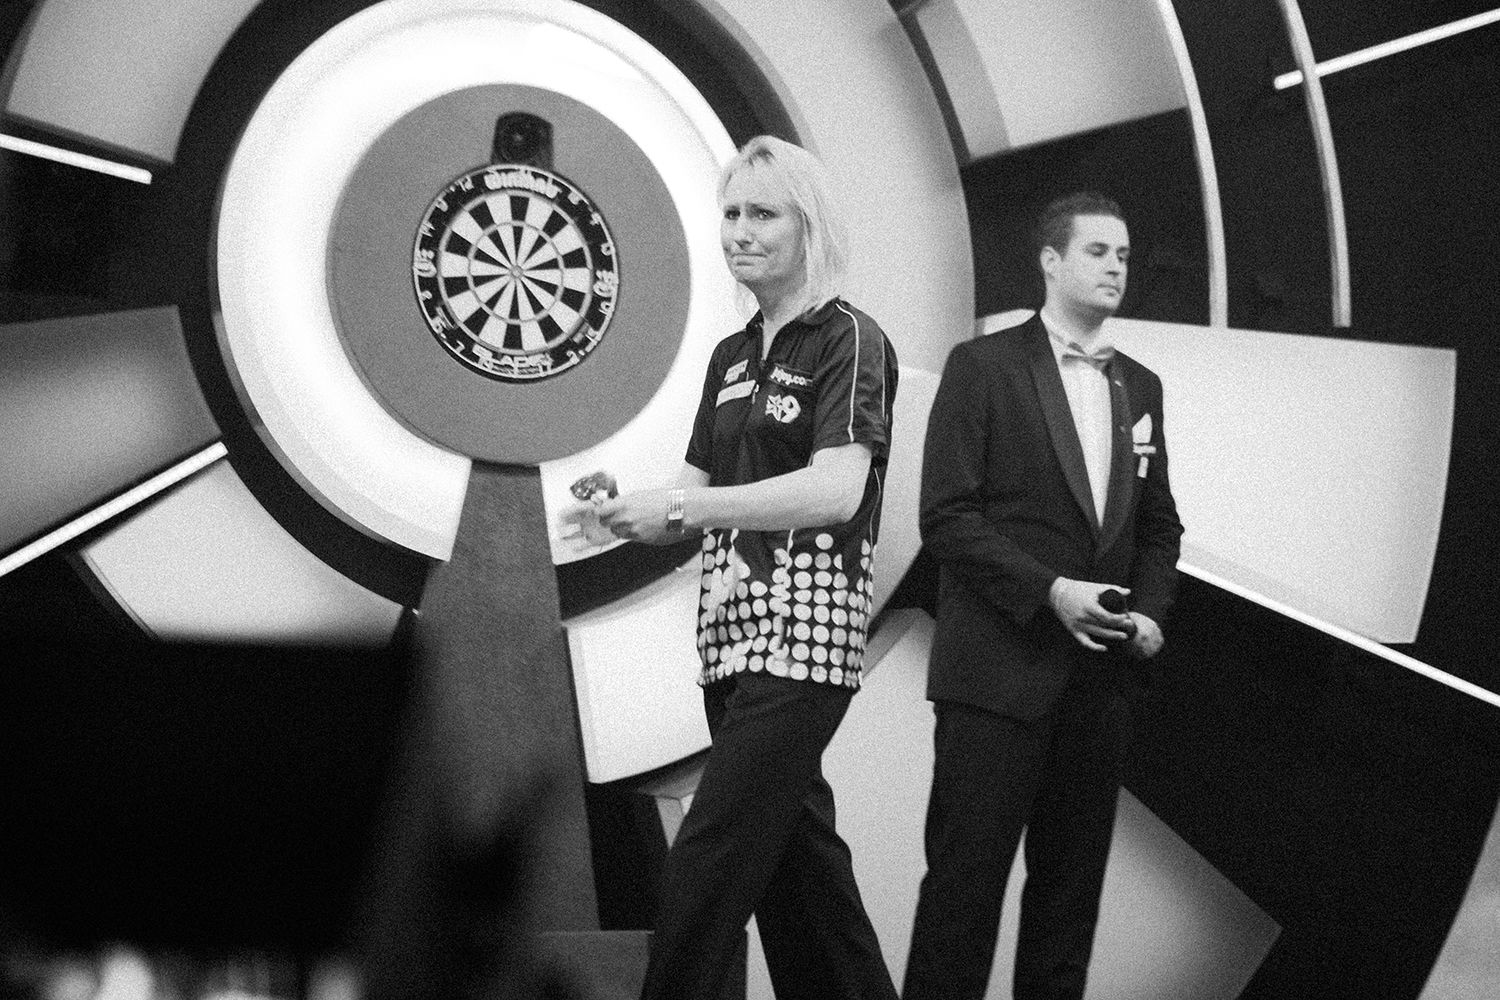 DARTS_LAKESIDE_1437.jpg